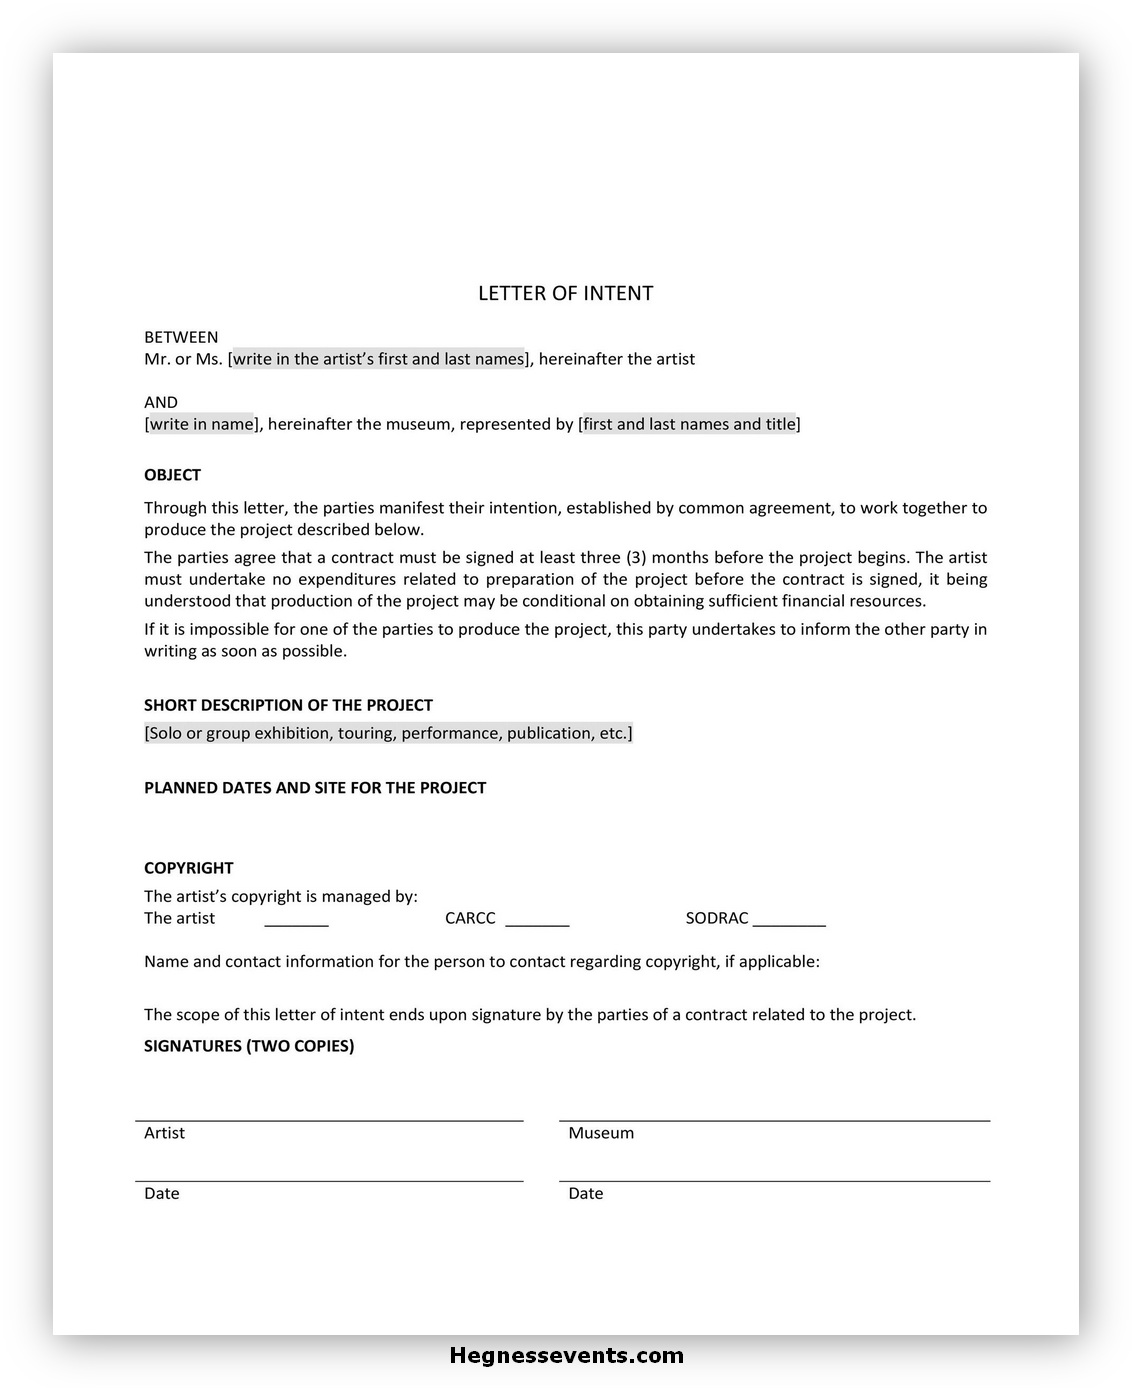 Letter of Intent Template 09